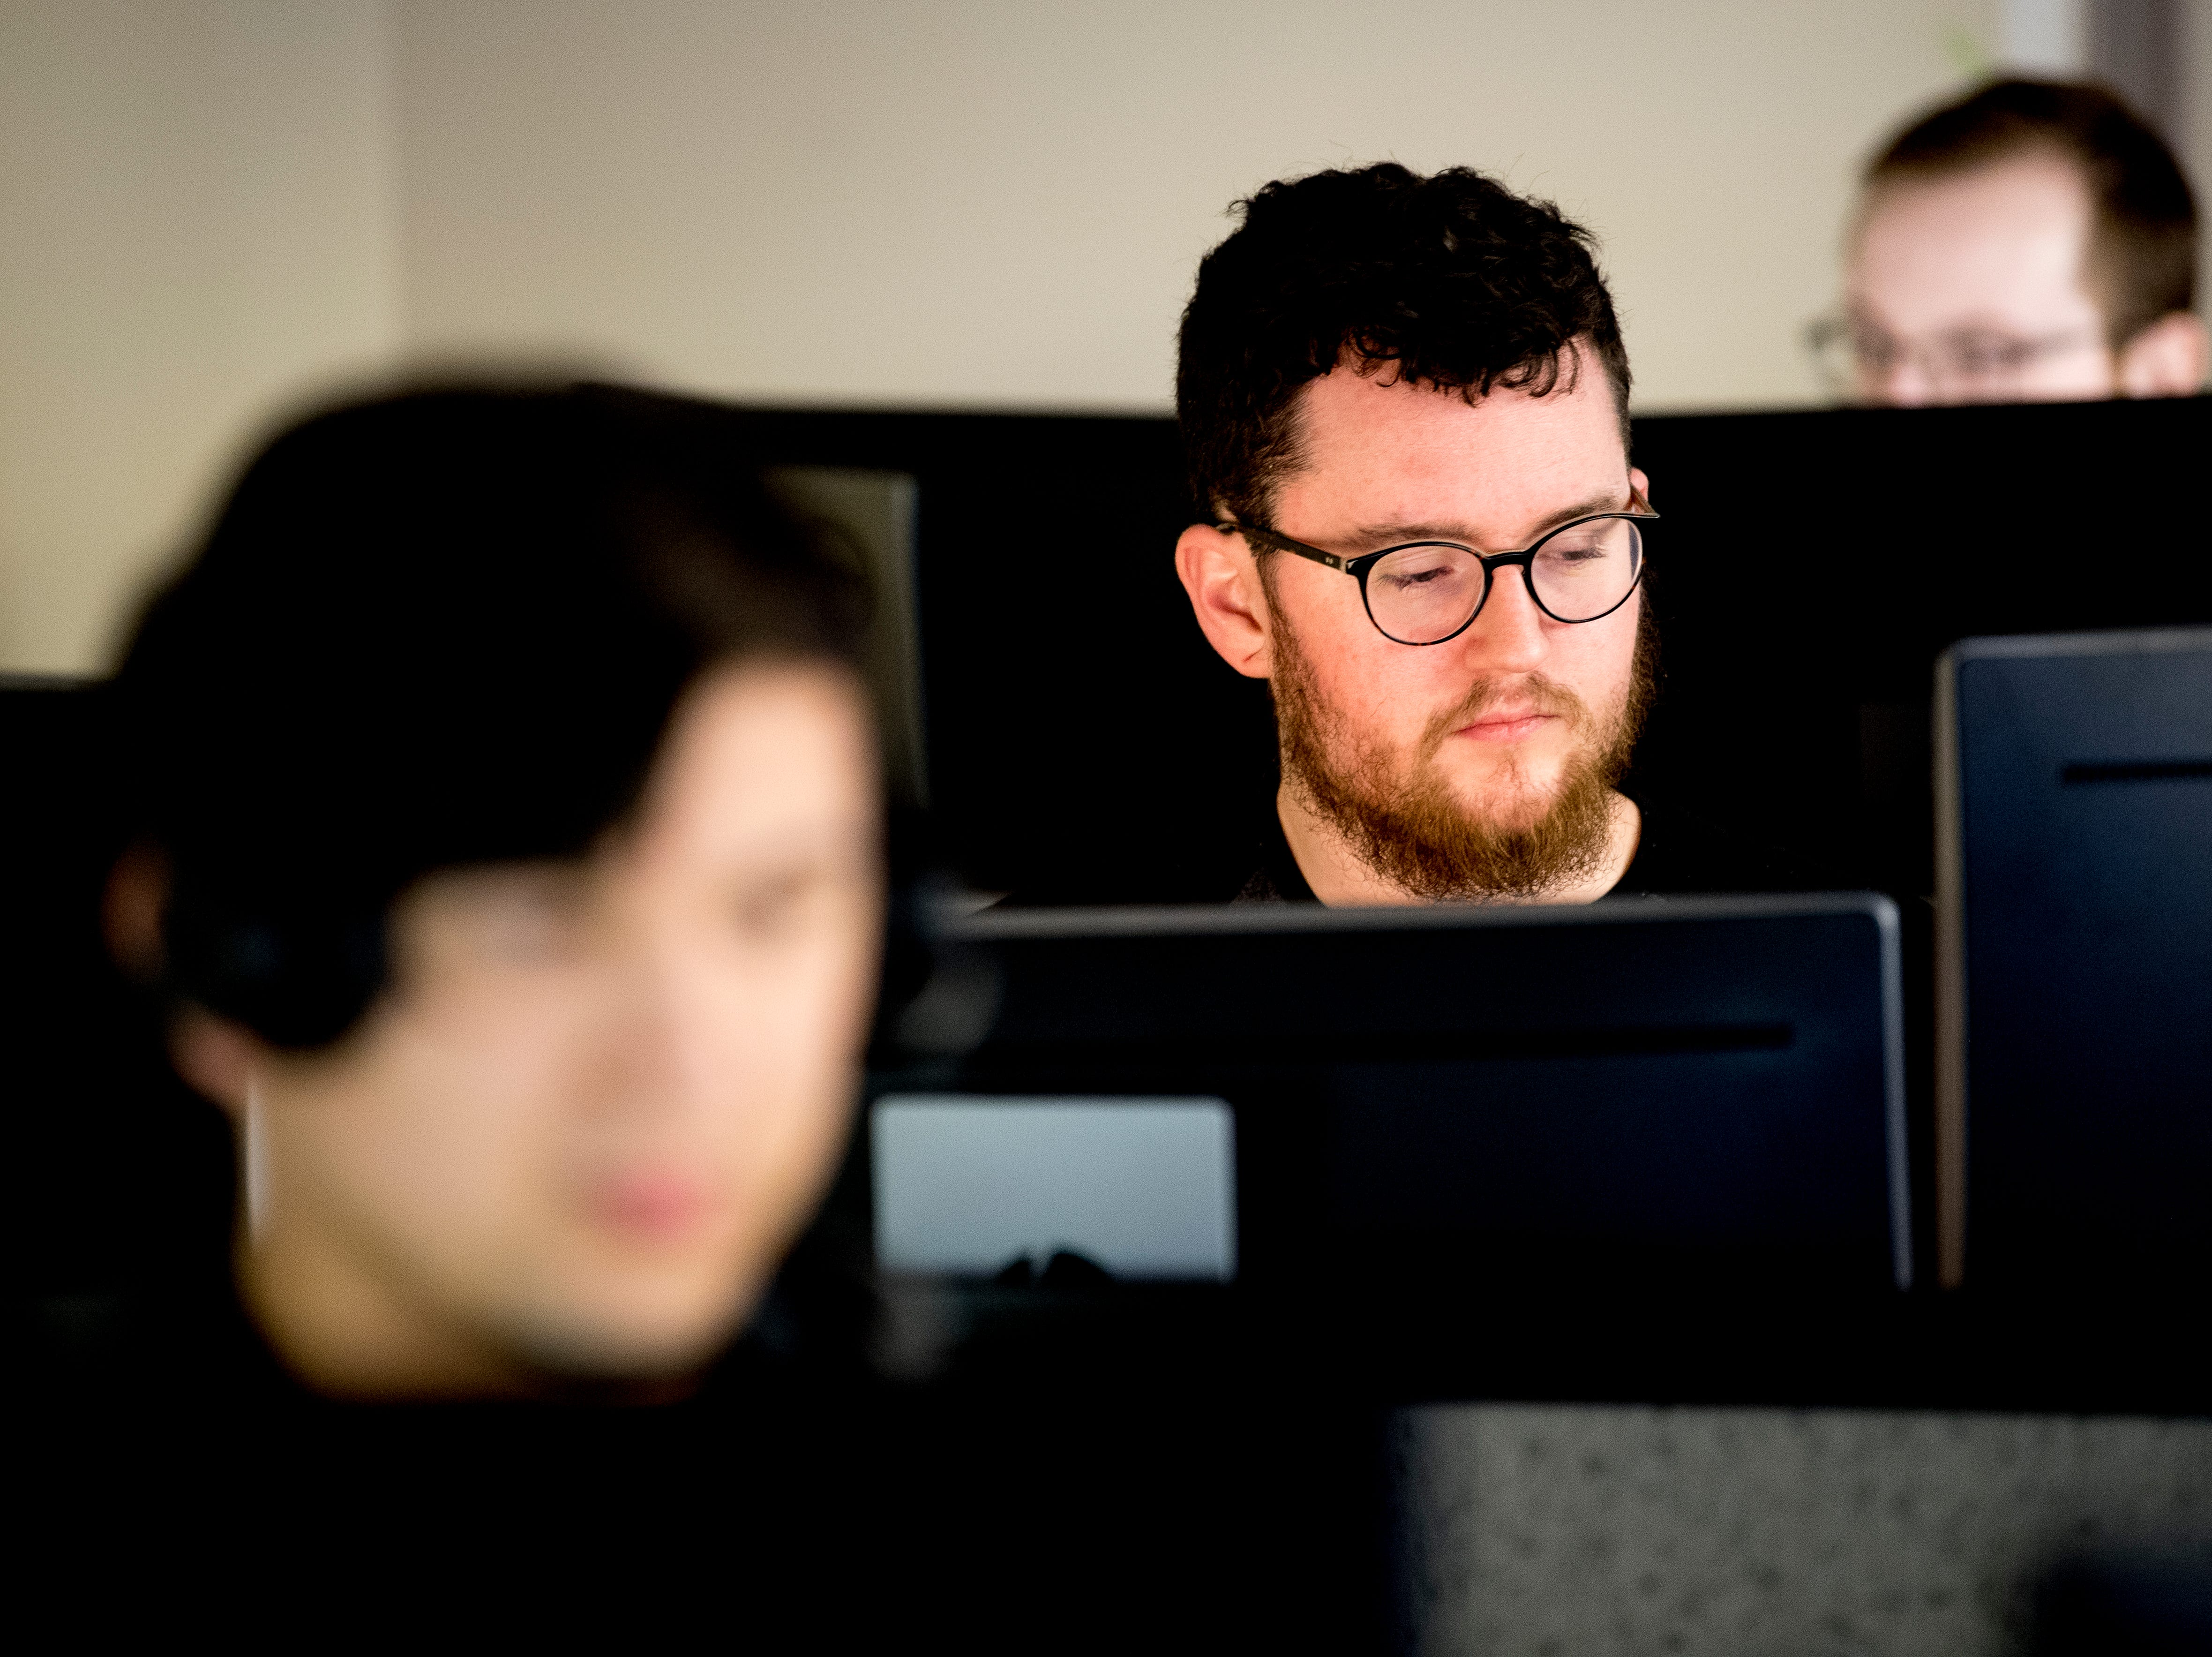 An operations support desk technician works in the control room at the Cellular Sales headquarters on 9040 Executive Park Drive in West Knoxville, Tennessee on Wednesday, January 16, 2019. An authorized agent of Verizon Wireless, Cellular Sales specializes in retail and support for over 700 of Verizon stores in 42 states.